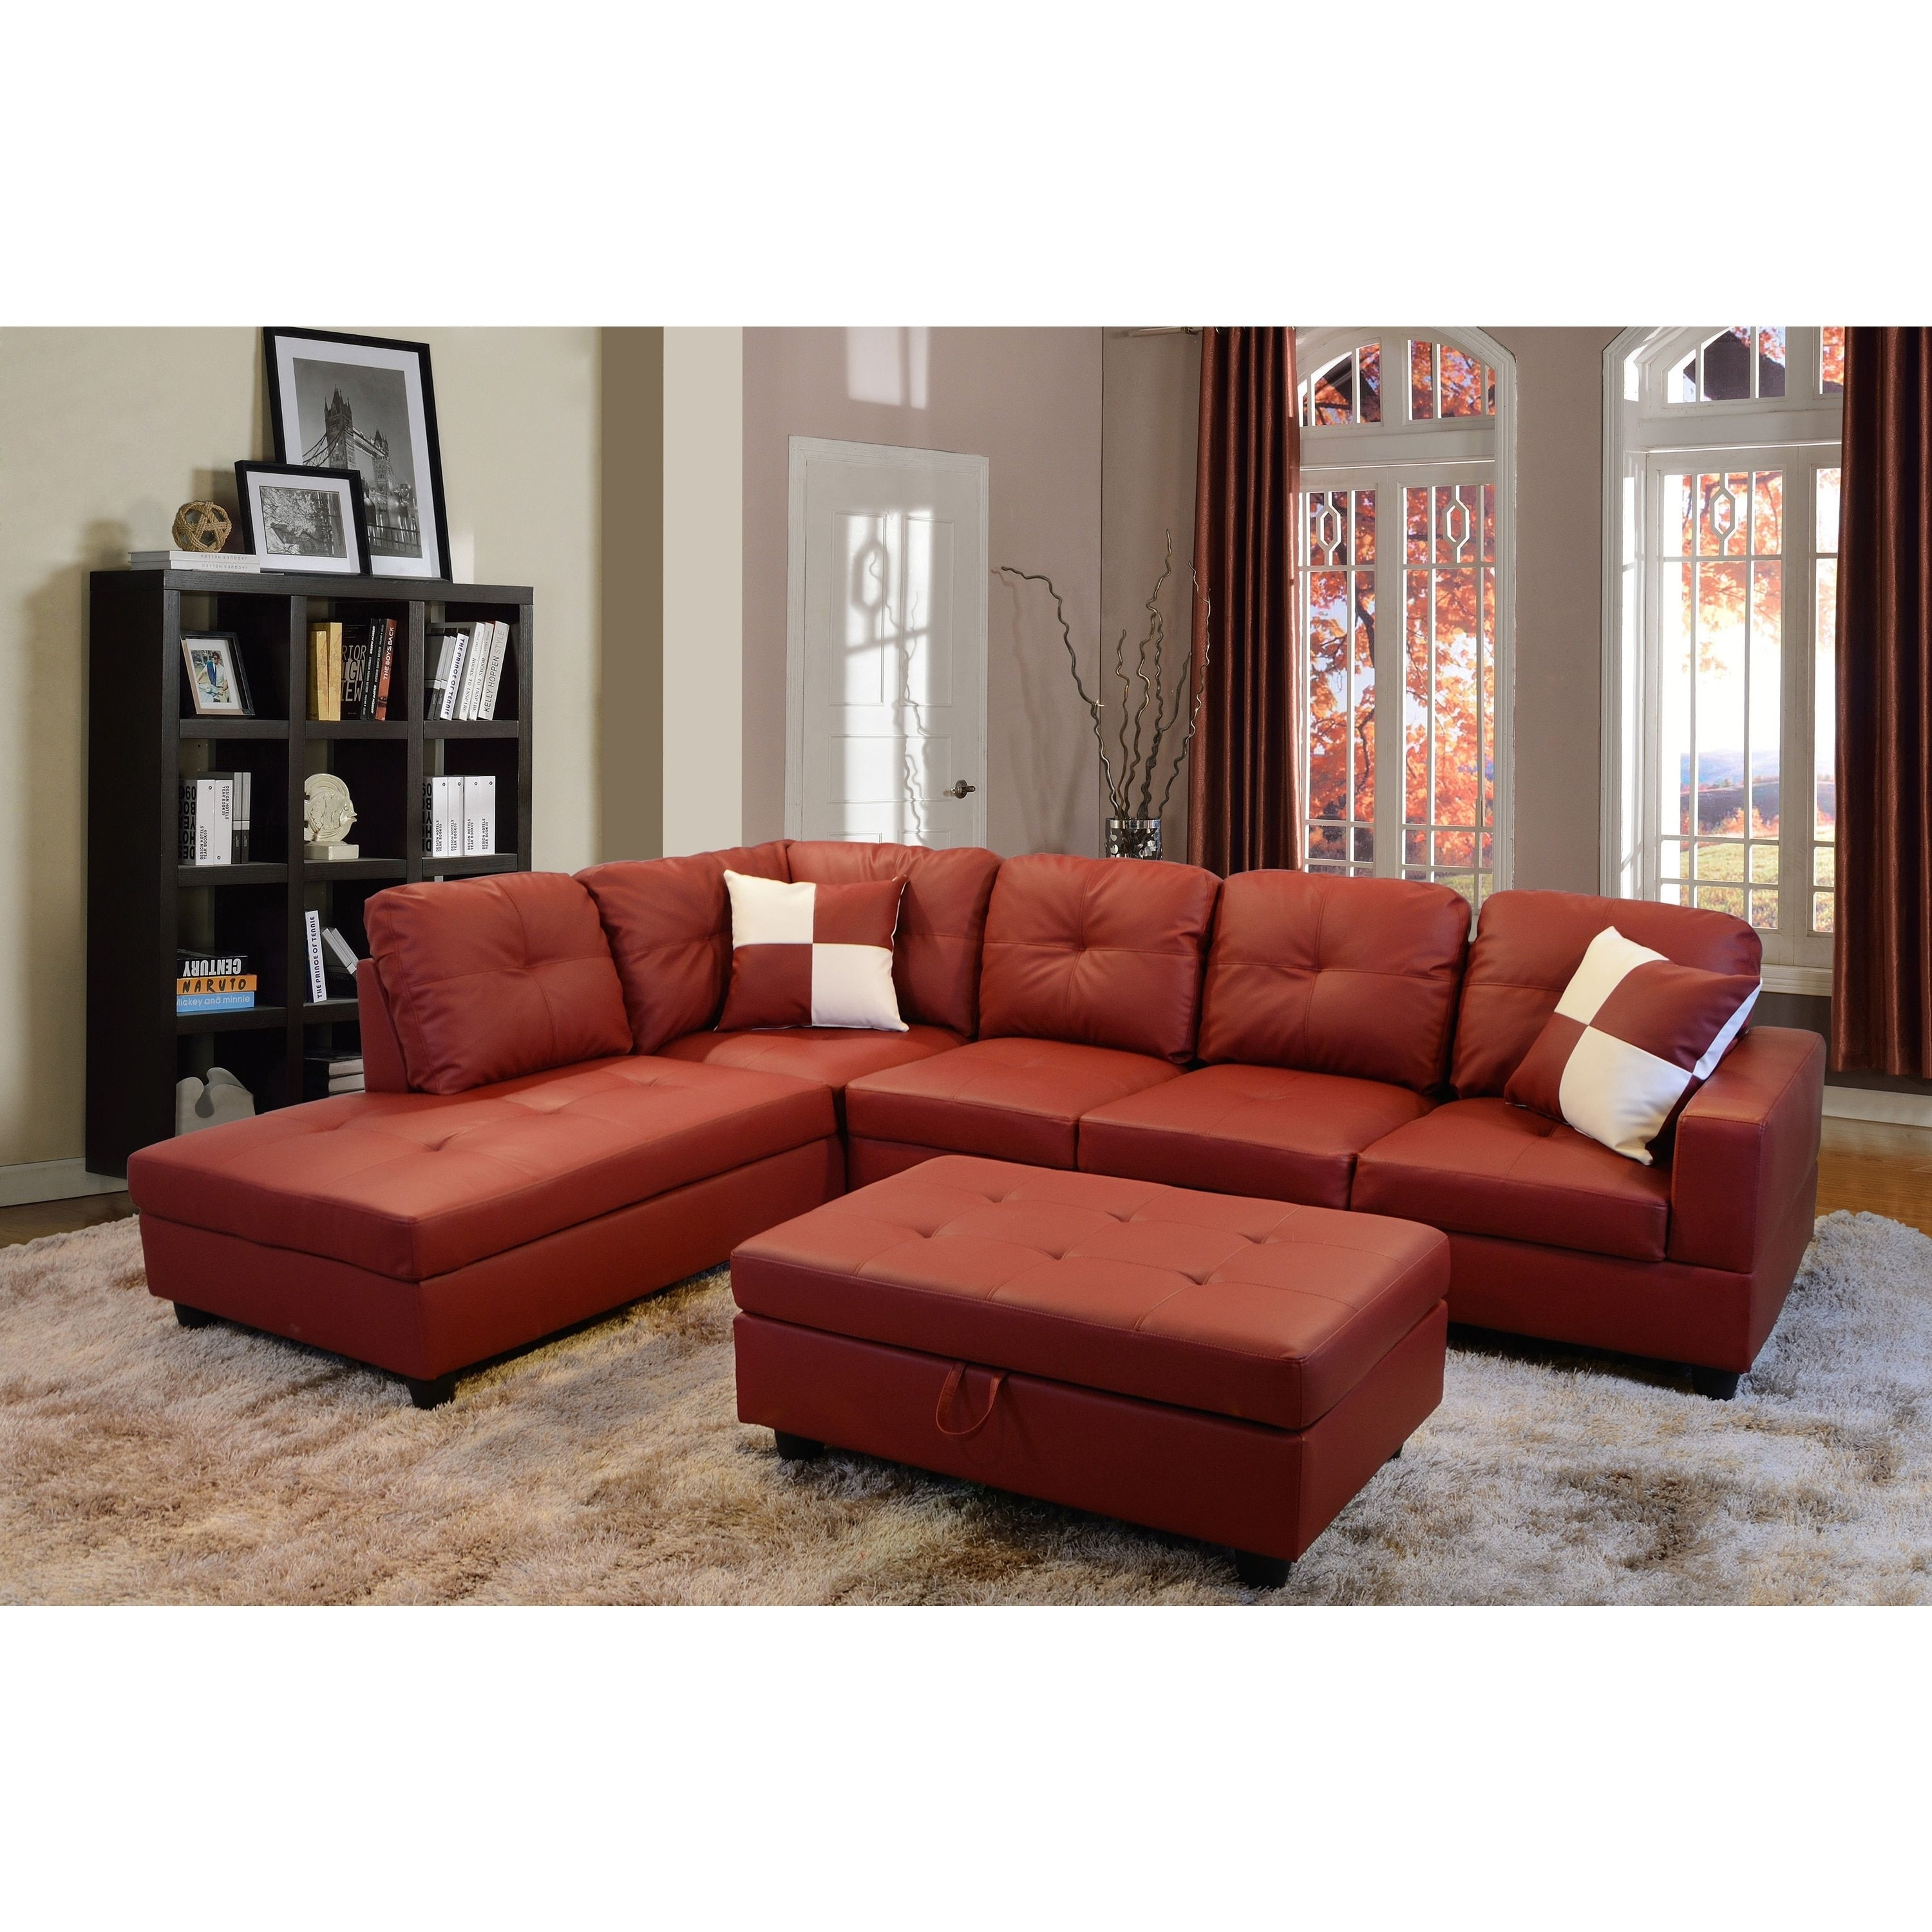 Delma 3 Piece Red Faux Leather Furniture Set (Delma 3 Pc Faux In Tenny Dark Grey 2 Piece Left Facing Chaise Sectionals With 2 Headrest (Image 10 of 25)